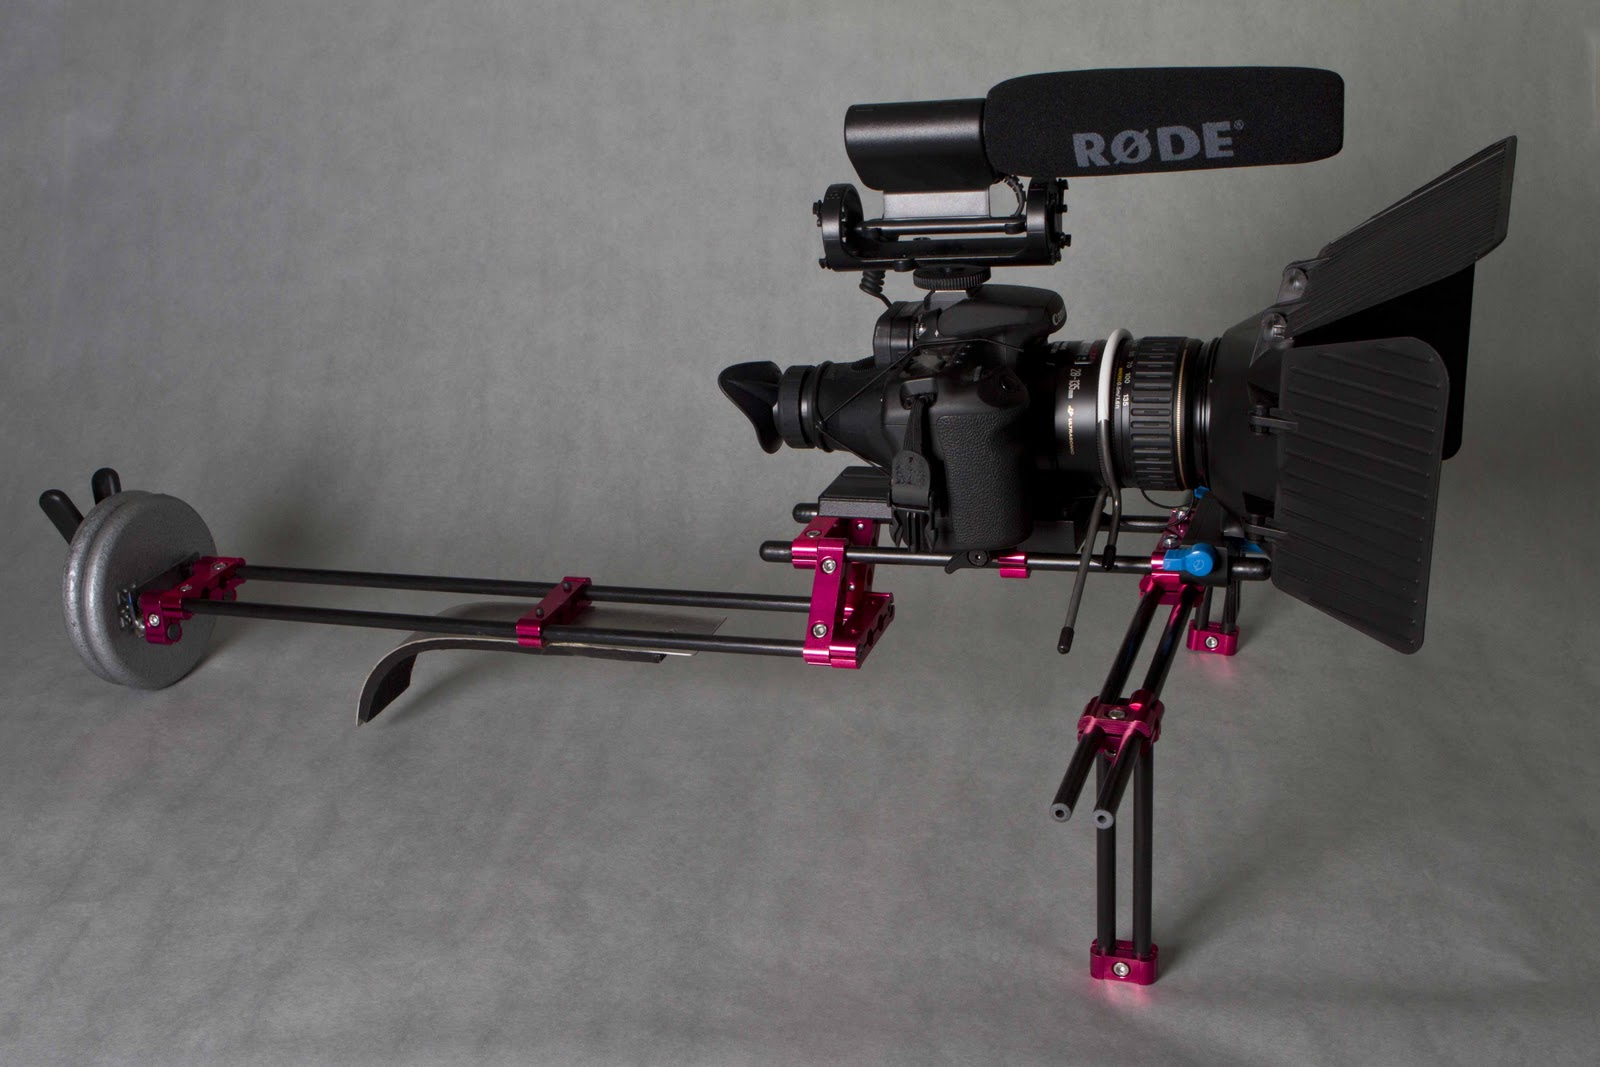 Camera Diy Dslr Camera Rig photozblog com diy dslr shoulder rig i came across a named the johan plug wire clamp this was setup liked because it gave feel of true system at cost effective